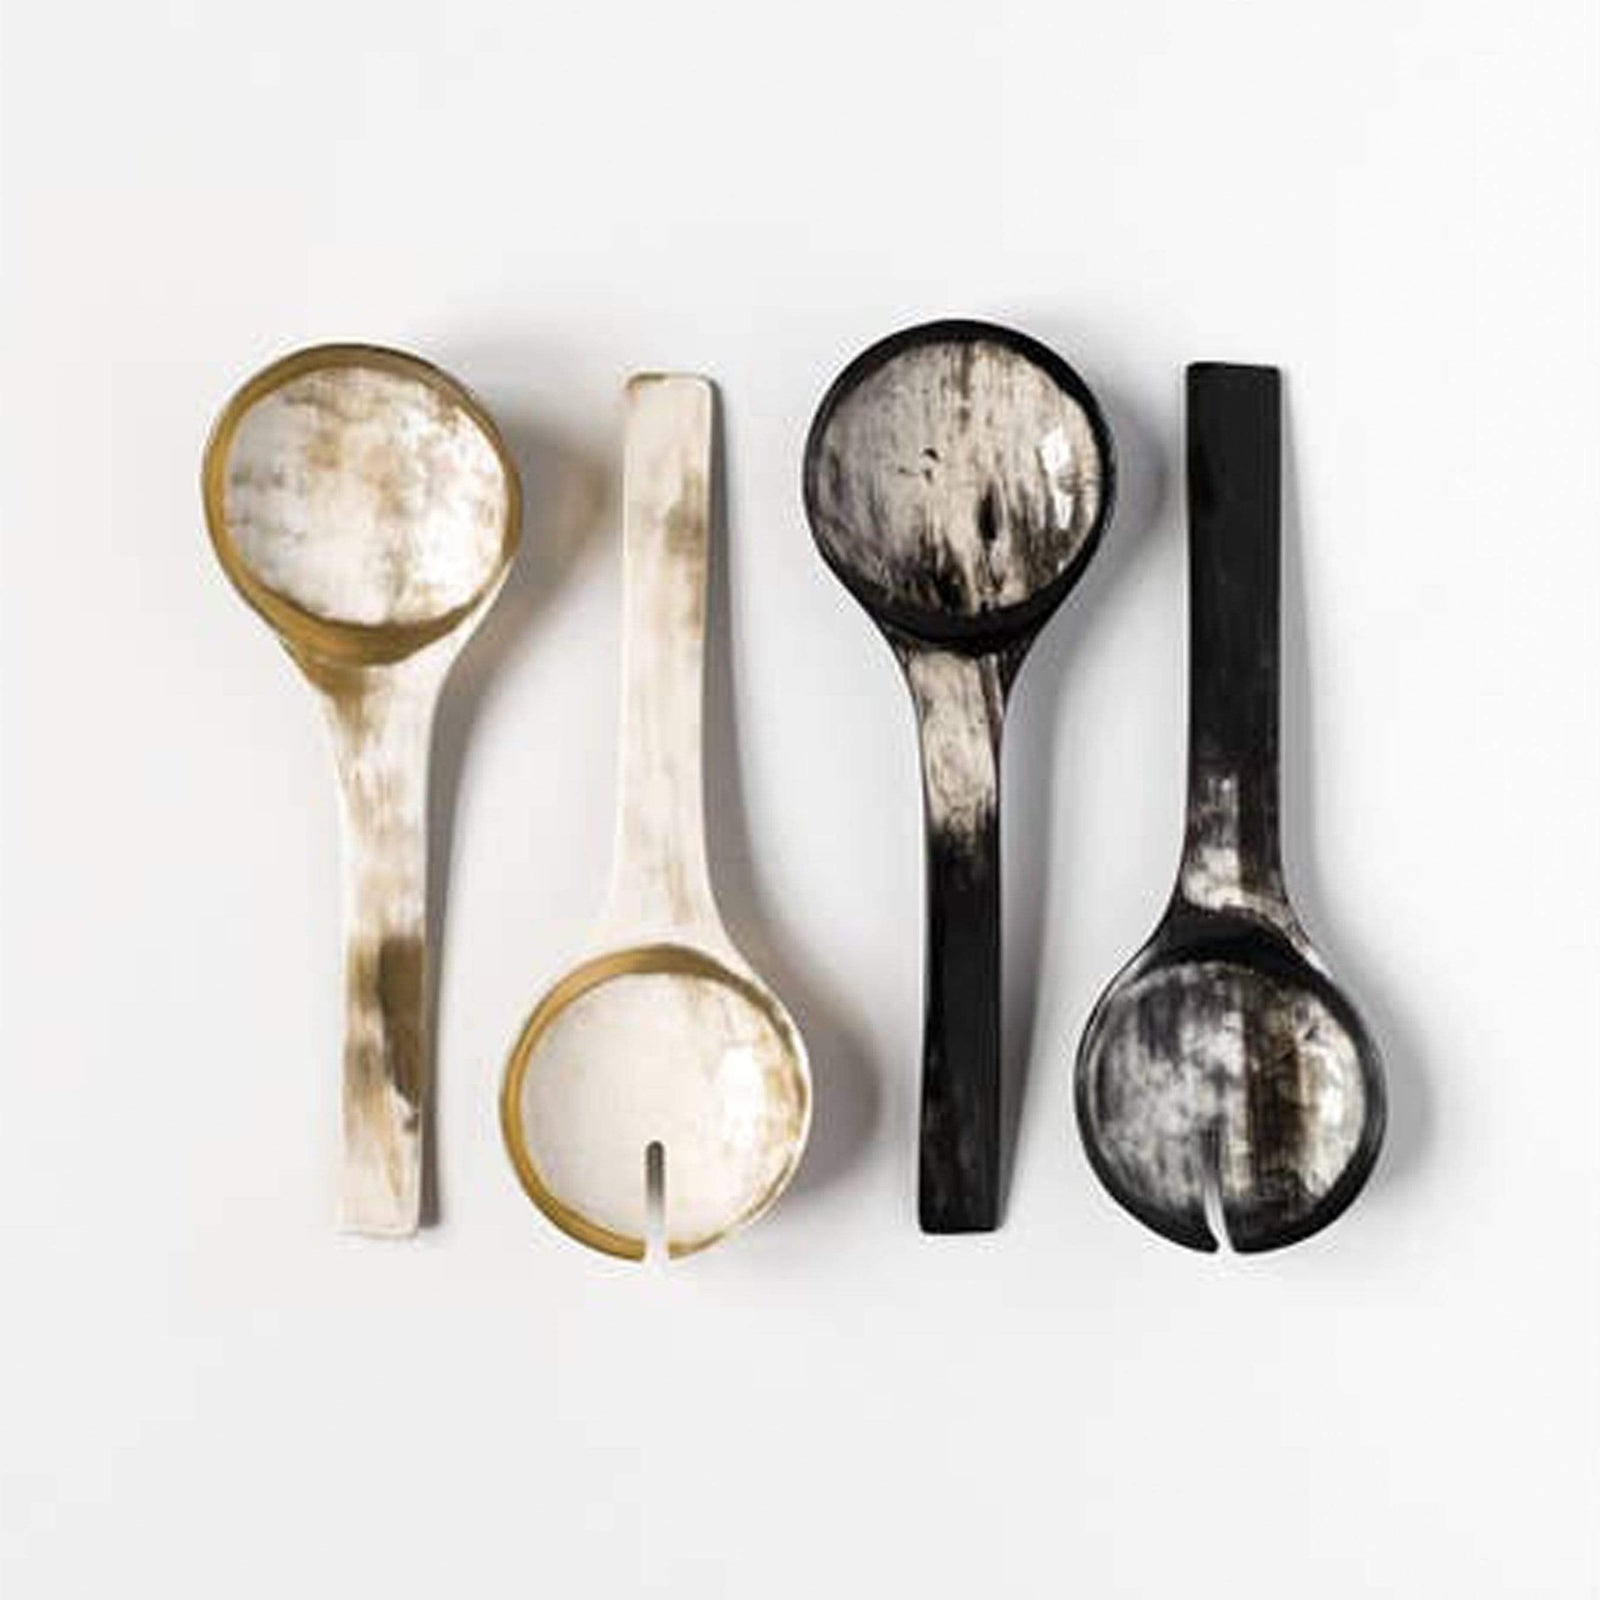 Rose & Fitzgerald Kitchenware Ankole Horn Serving Spoon Sets